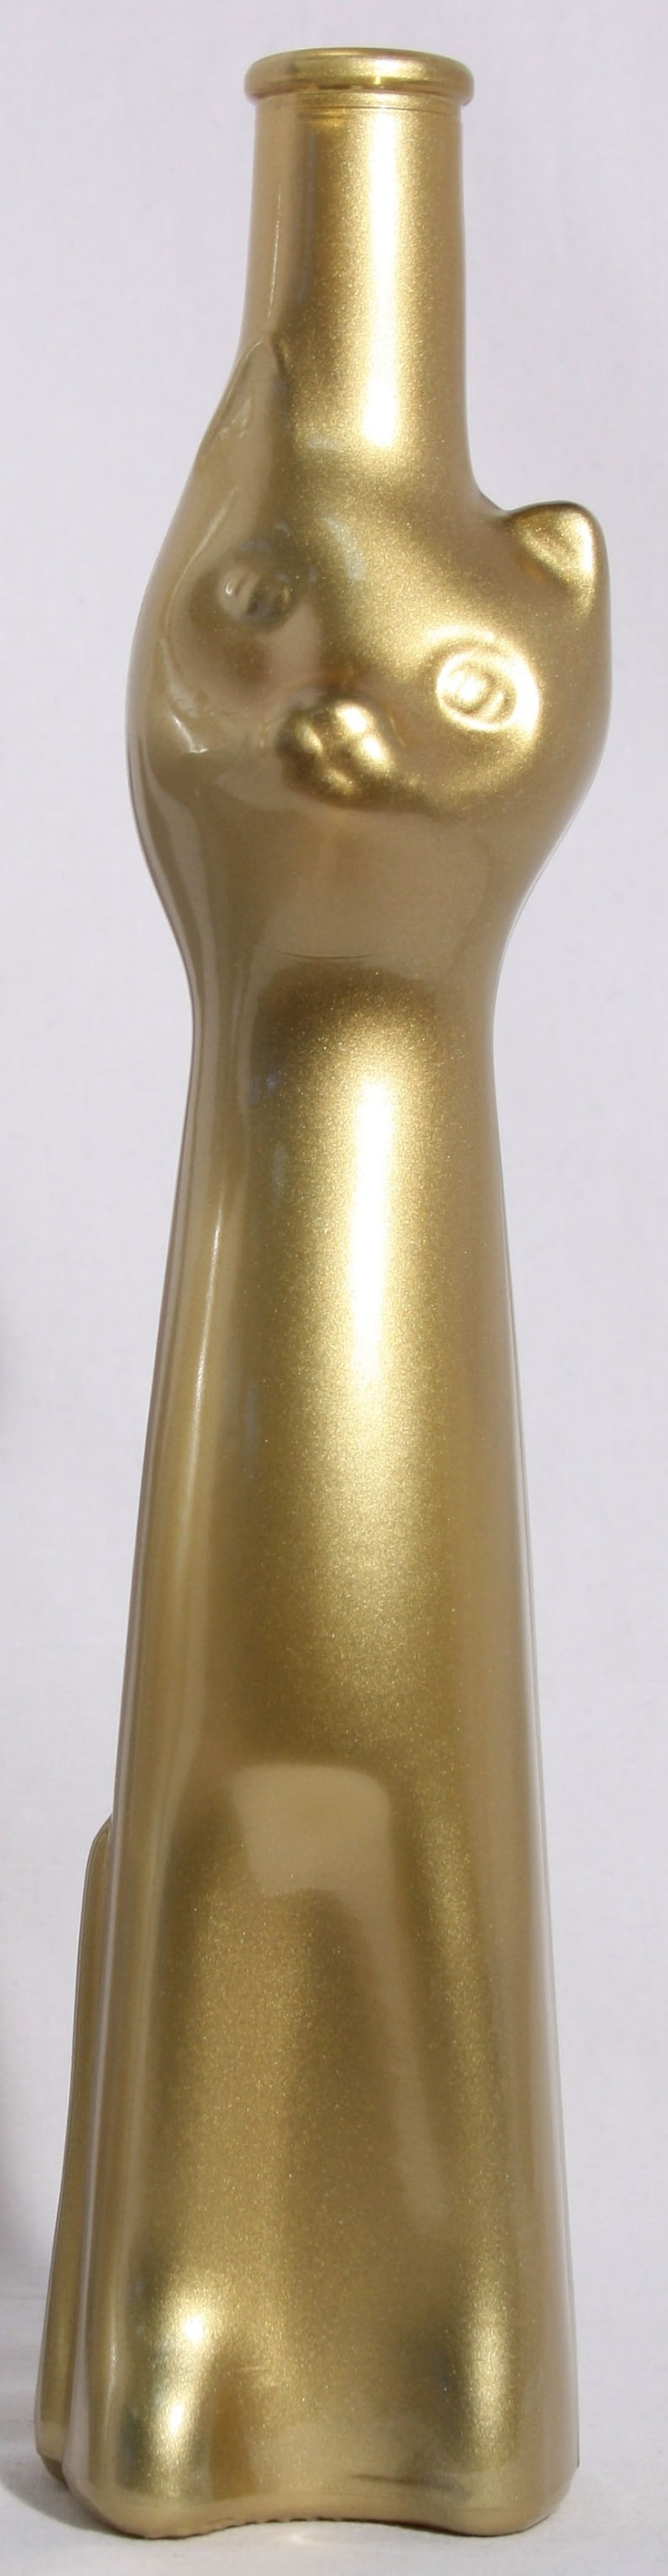 Moselland Reisling Cat Bottle, Gold Cat wine, Riesling